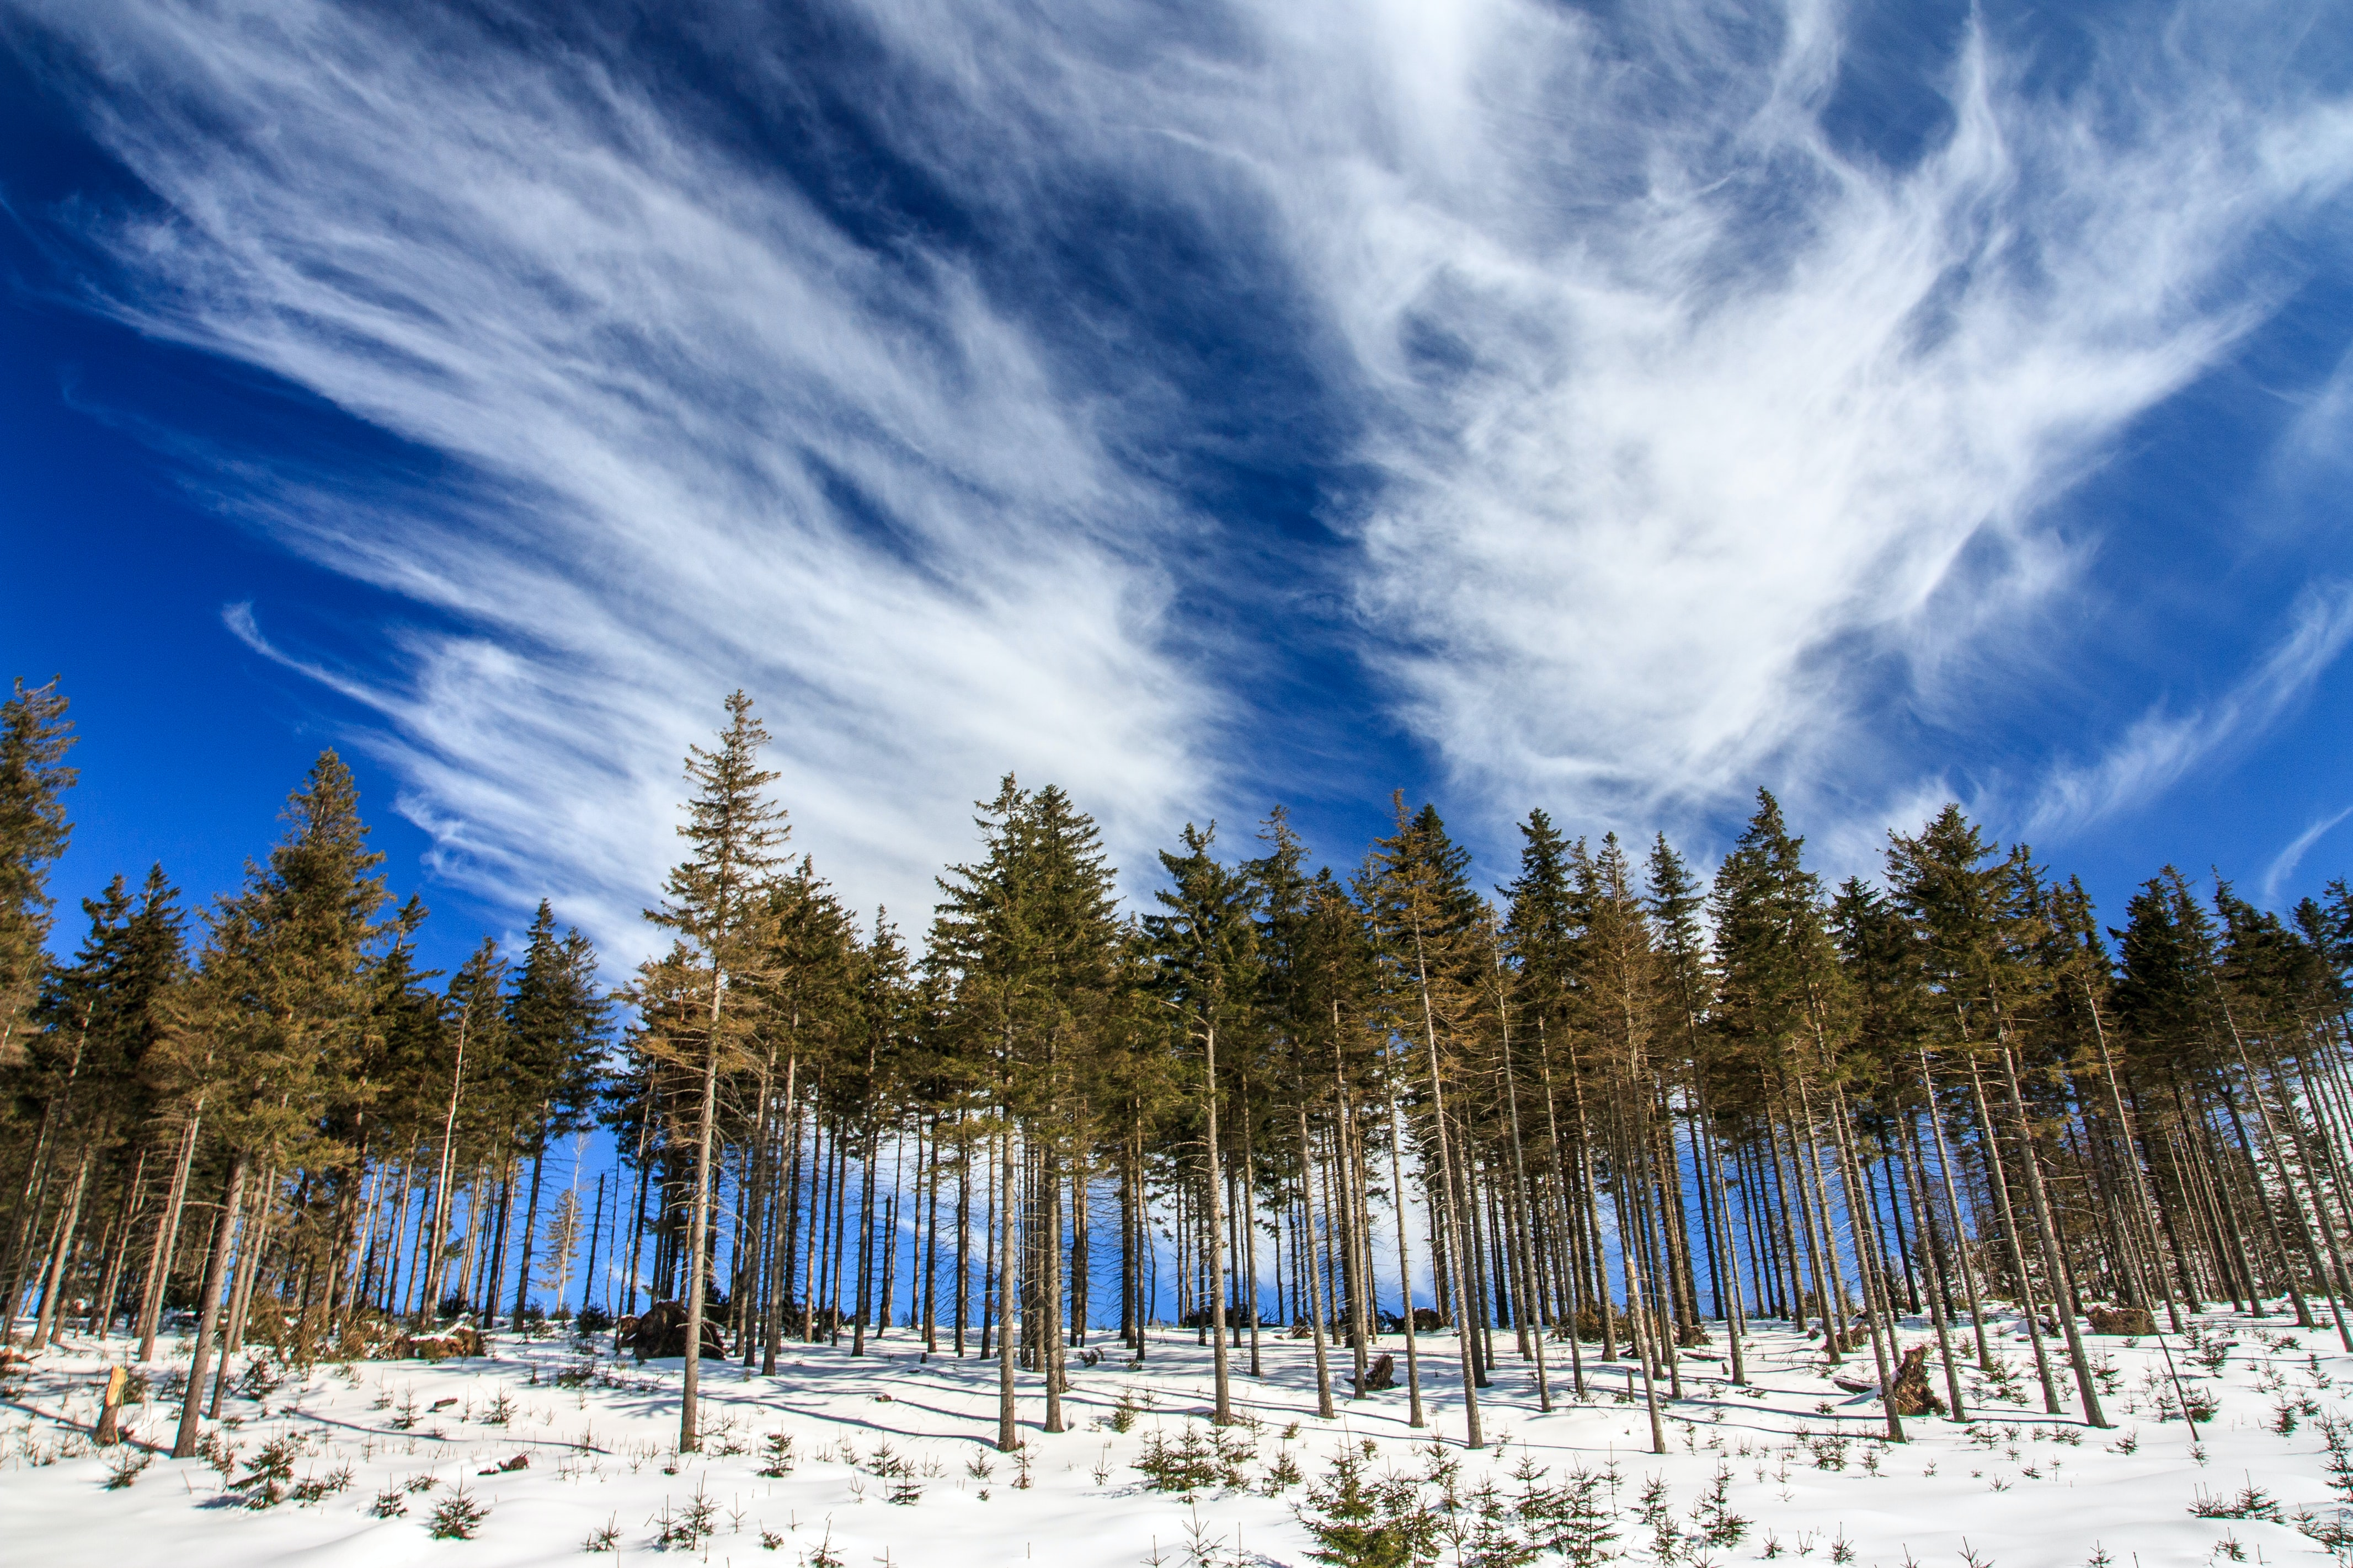 A treeline photo capturing a clear treed forest with snow covered grounds on a cloudy day